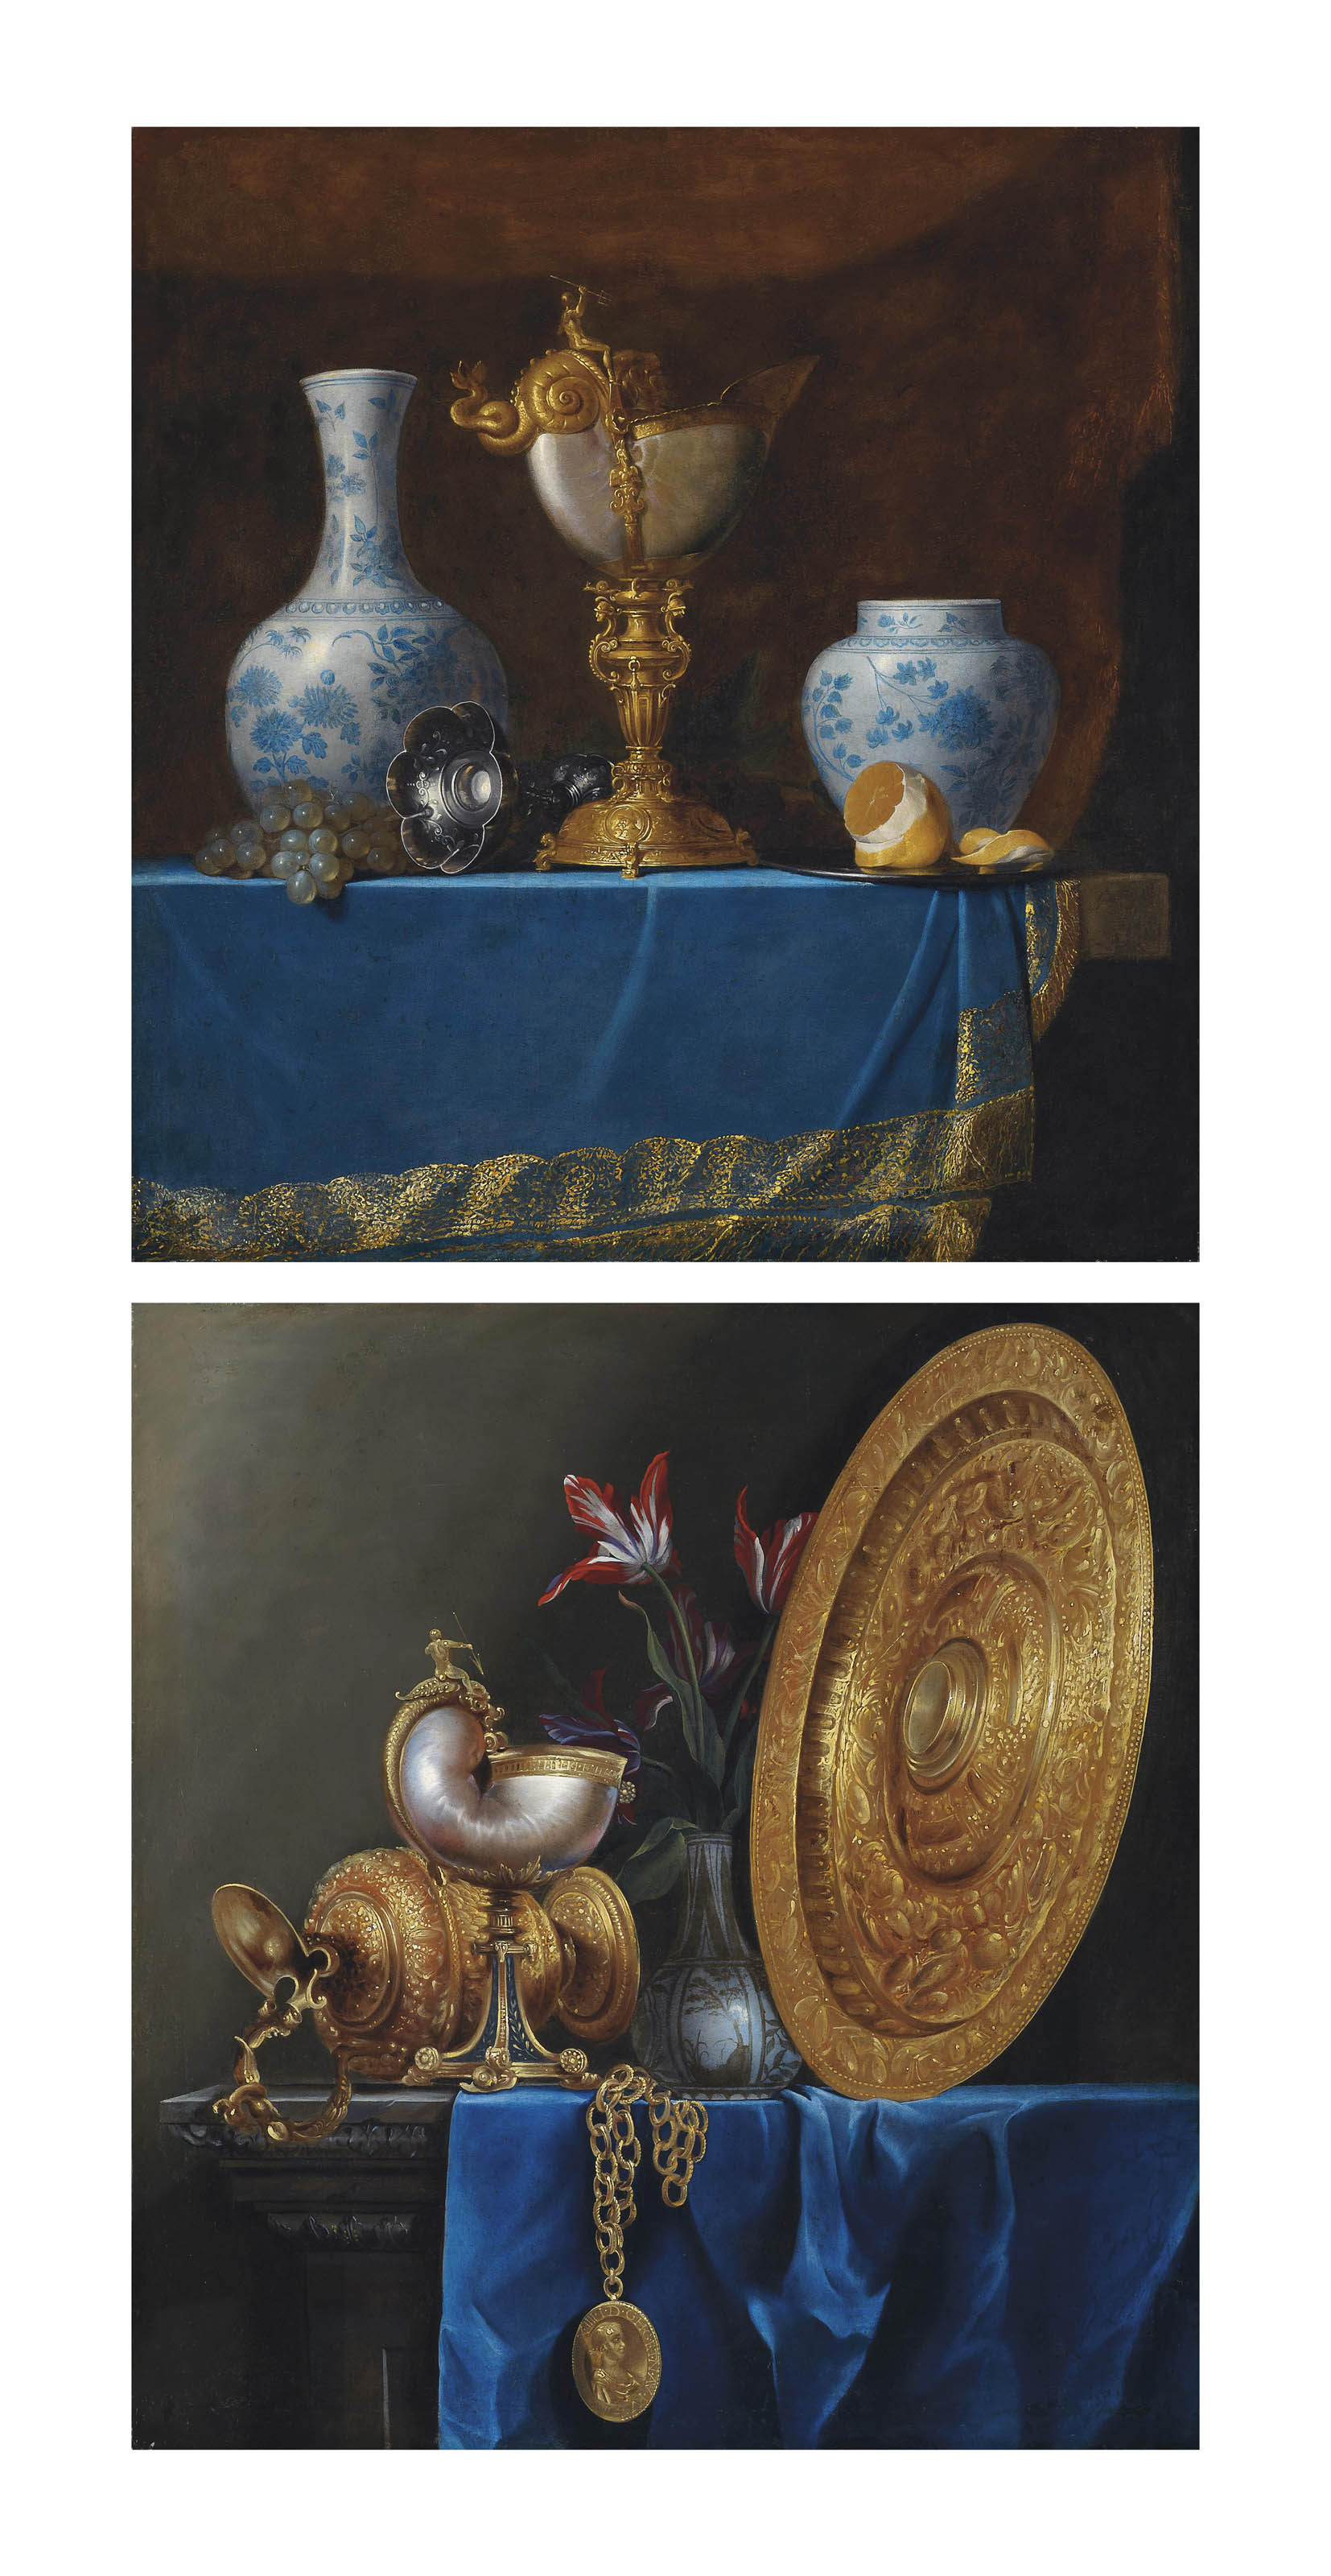 A nautilus cup, 17th Century Chinese porcelain vases, grapes, a pewter chalice and a partly peeled lemon on a draped table; and A nautilus cup, a gilded ewer, tulips in a vase, a gilded sideboard dish and a medallion on a partly draped table